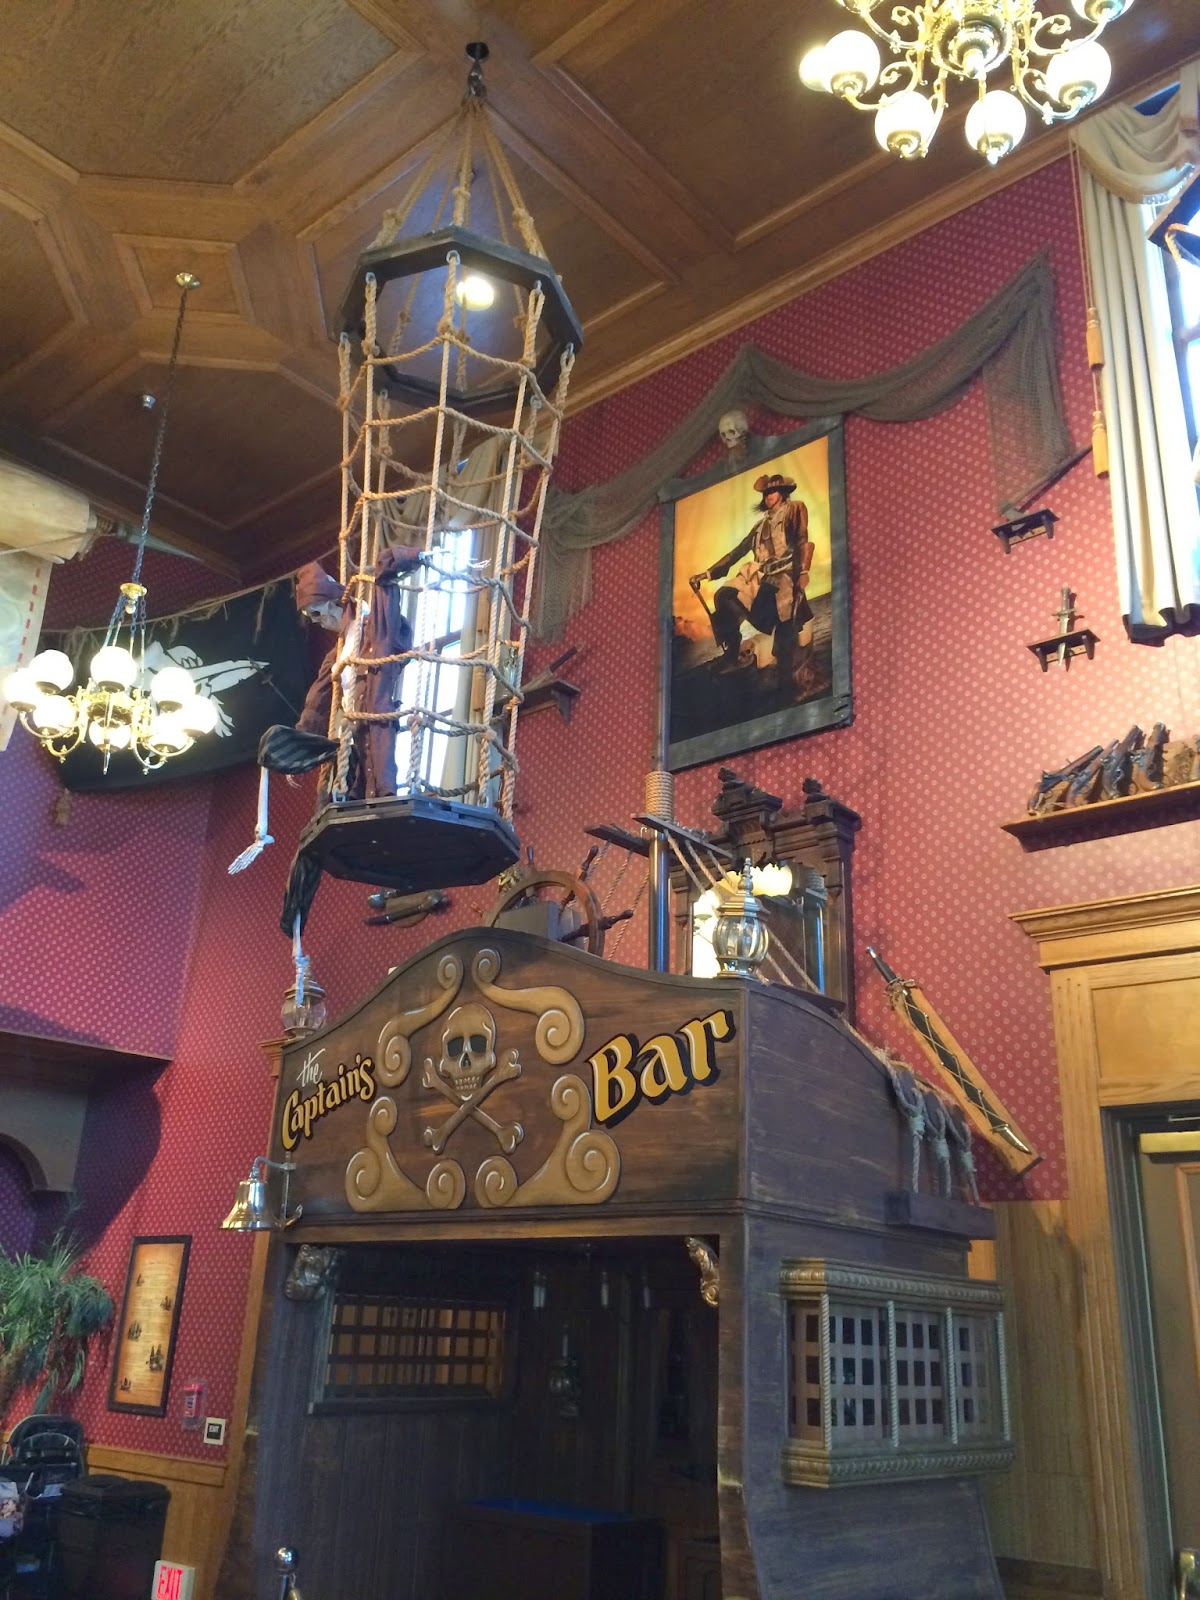 Pirates dinner adventure coupon code